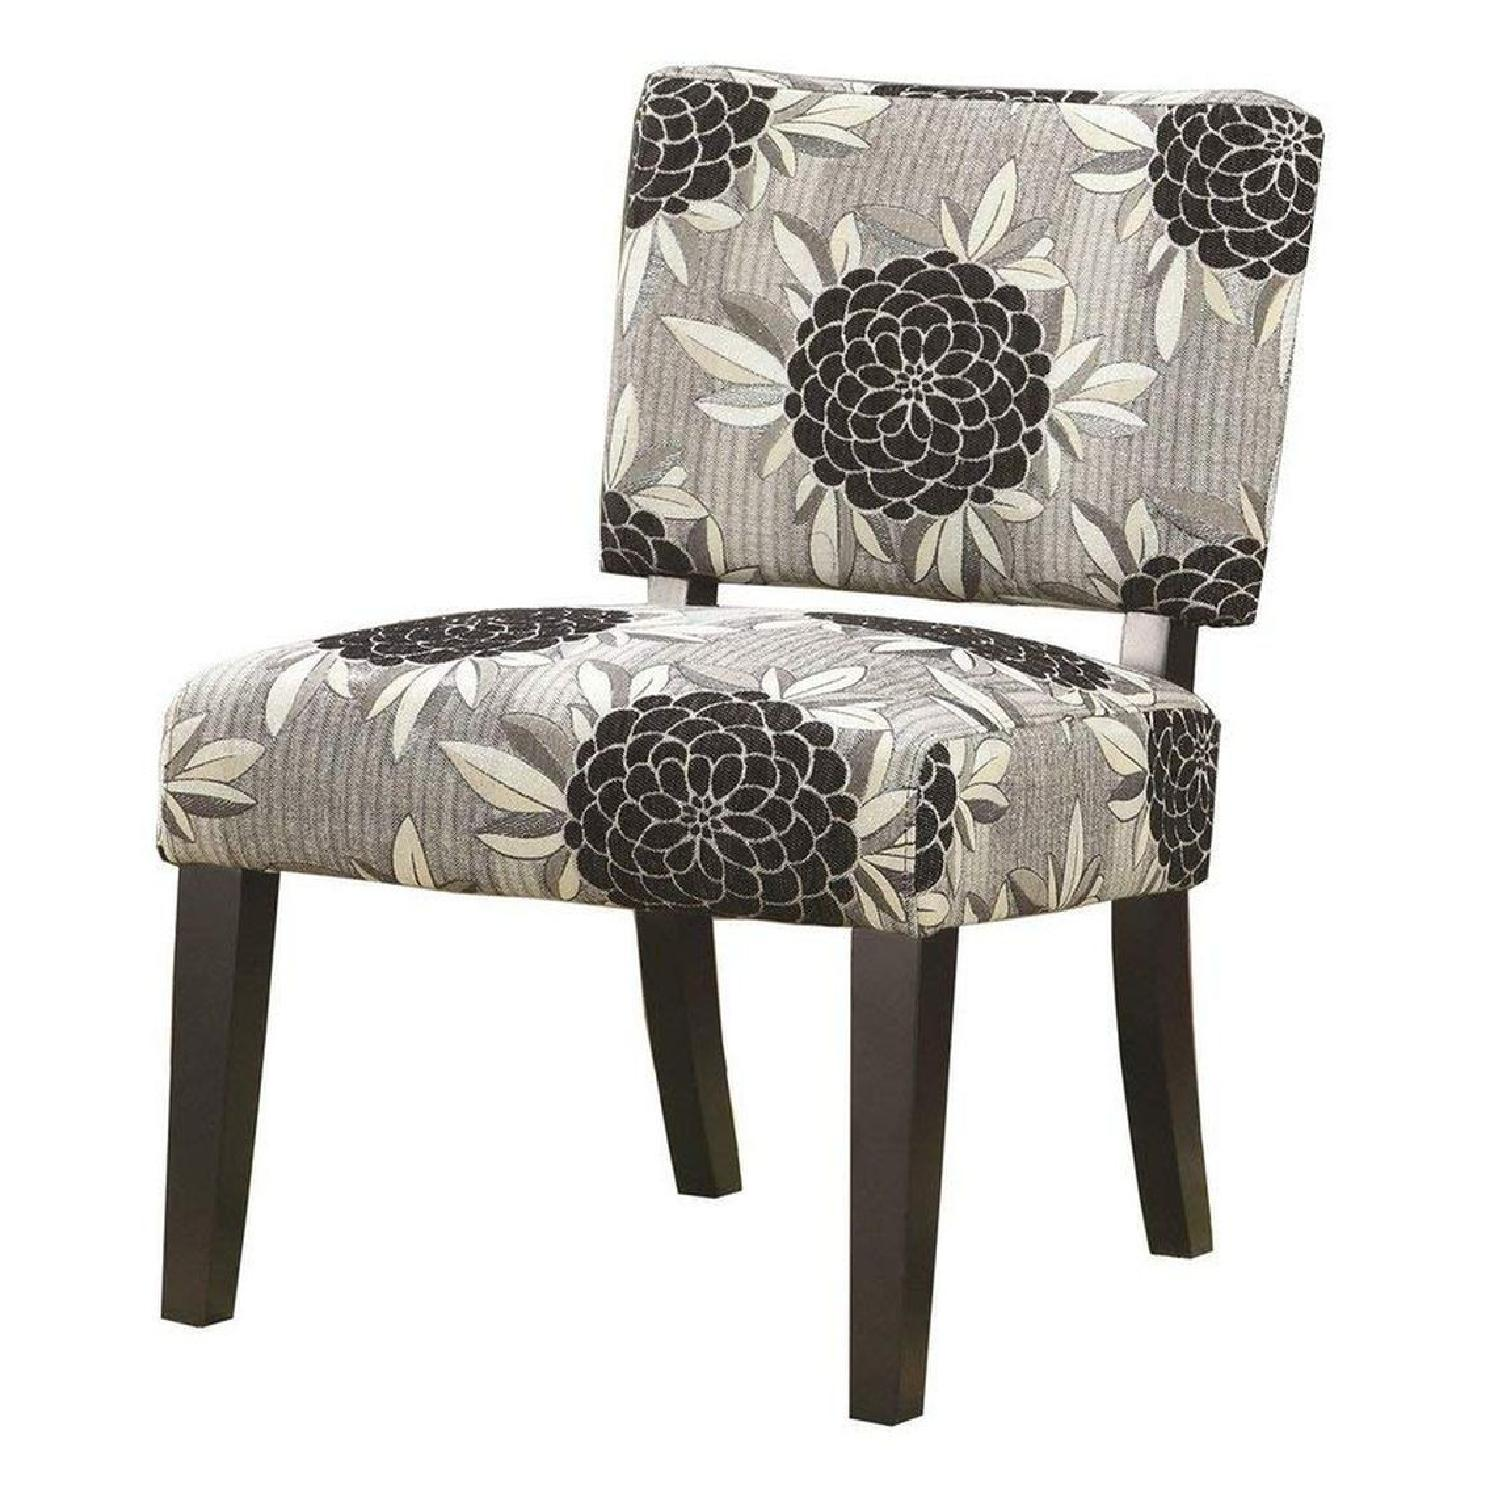 Accent Chair Upholstered W Floral Print Fabric Aptdeco